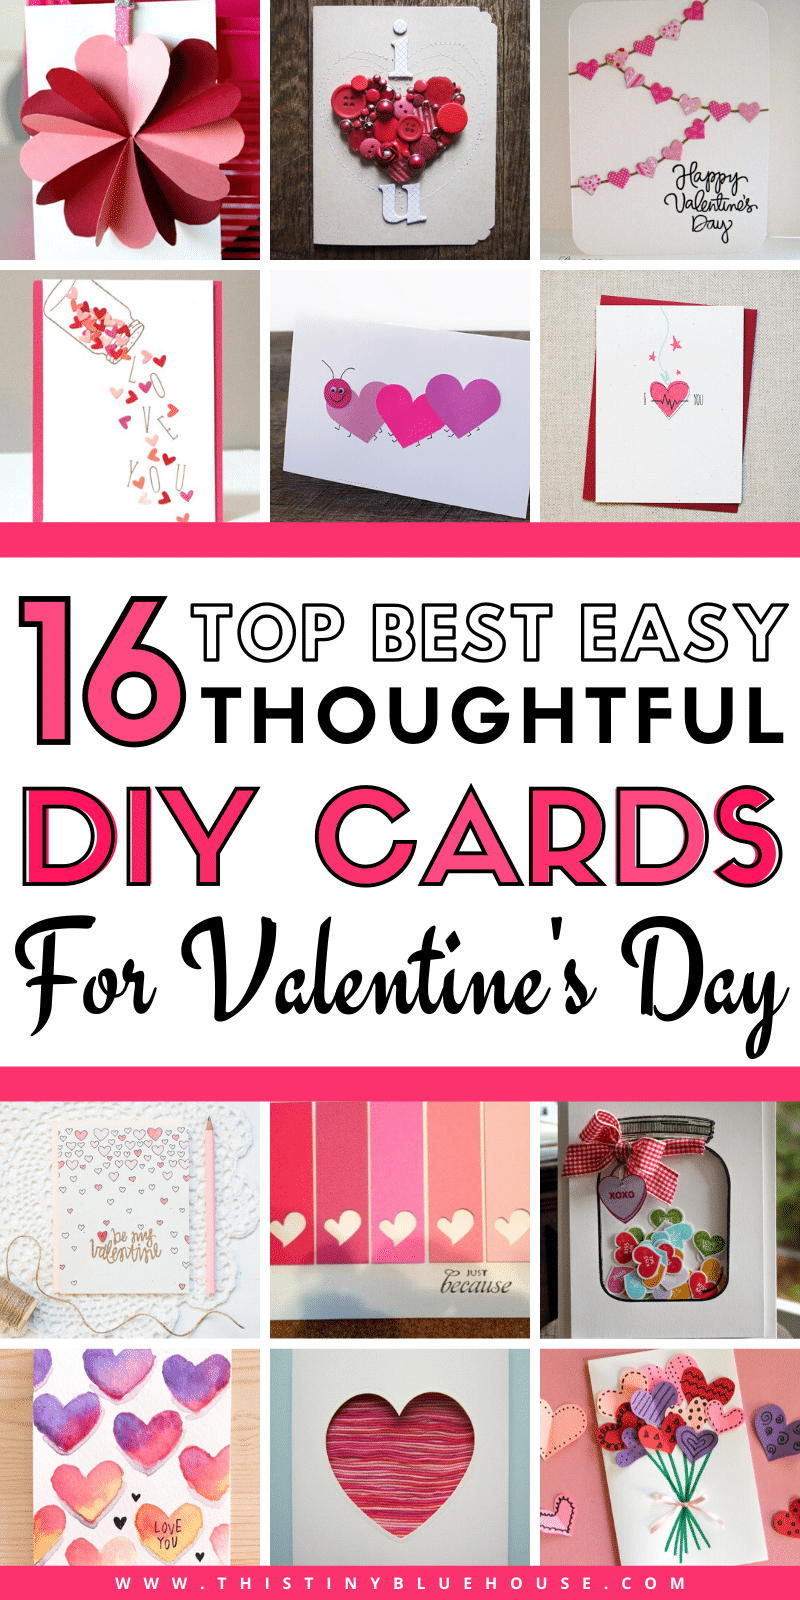 Offer that special someone in your life a totally custom homemade adorable DIY Valentine's Day Card this year. Nothing says I love you more than homemade! #DIYvalentinescard #EasyDIYvalentinesdaycard #DIYvdaycard